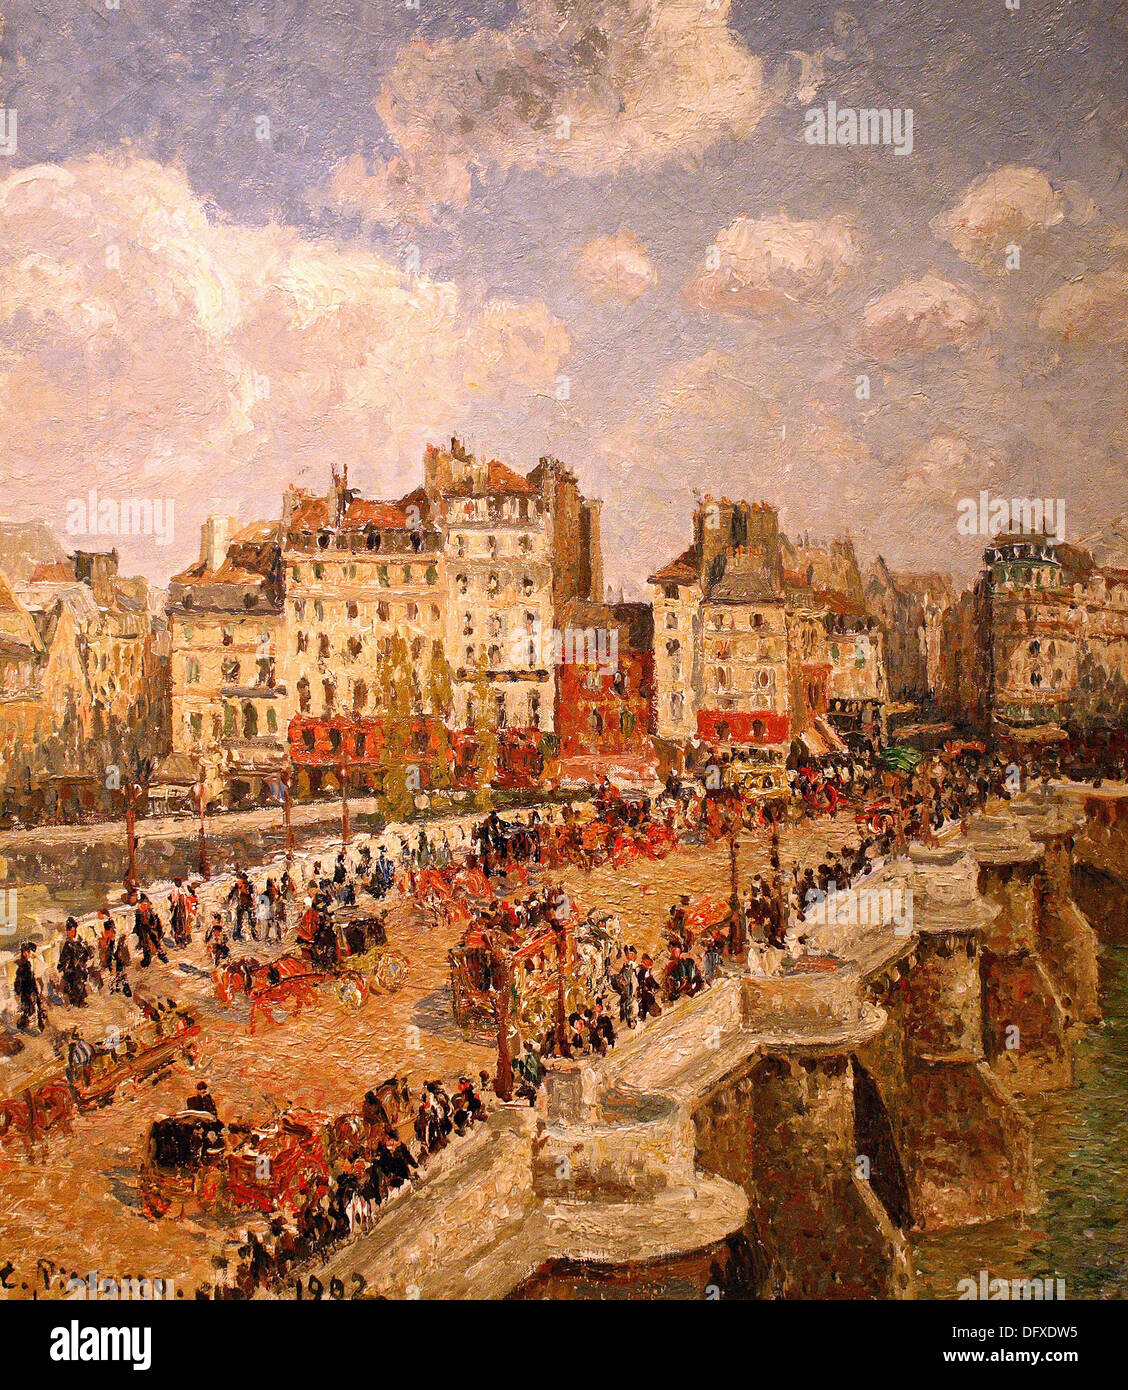 Camiller PISSARRO - Le Pont-Neuf - 1902 - Museum of Fine Arts - Budapest, Hungary. - Stock Image